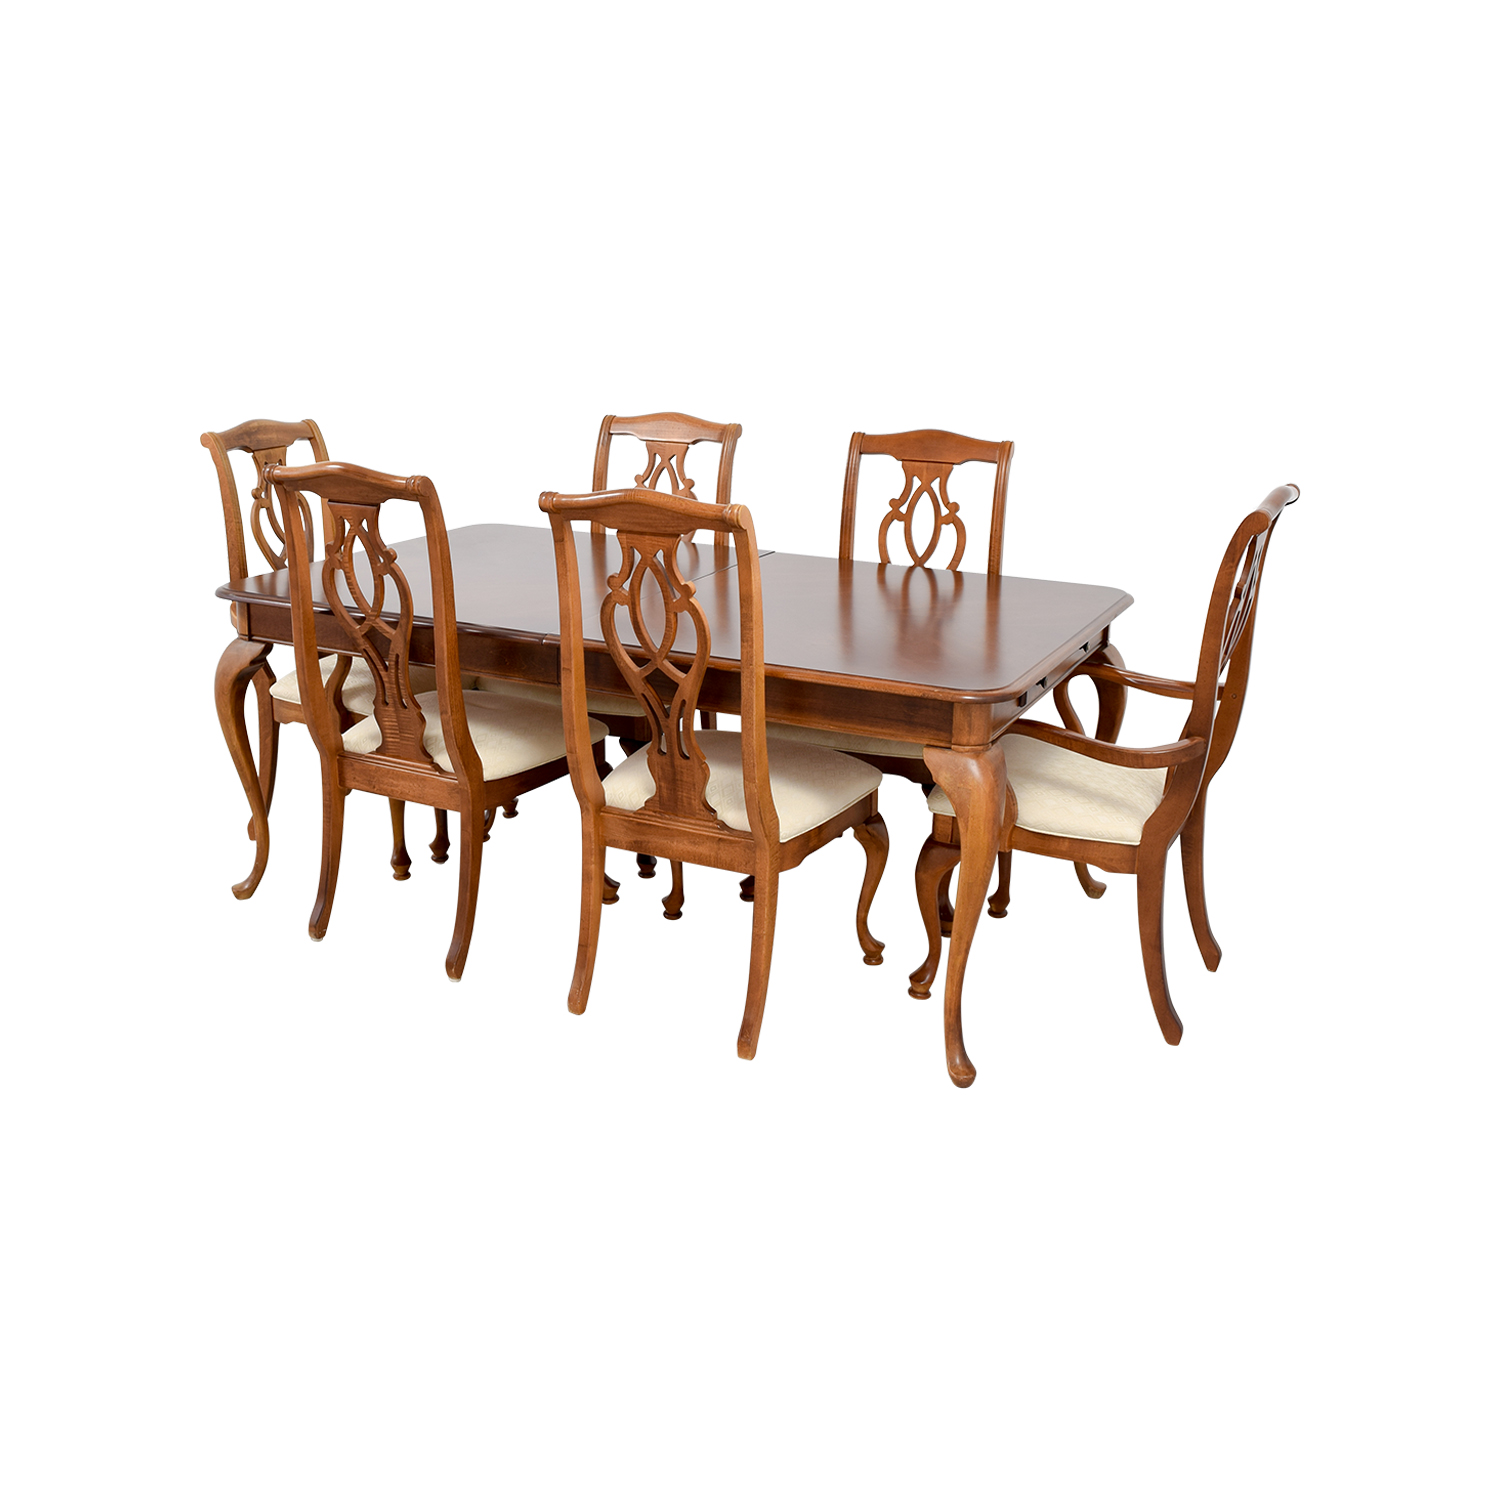 Extraordinary American Drew Dining Room Furniture Images